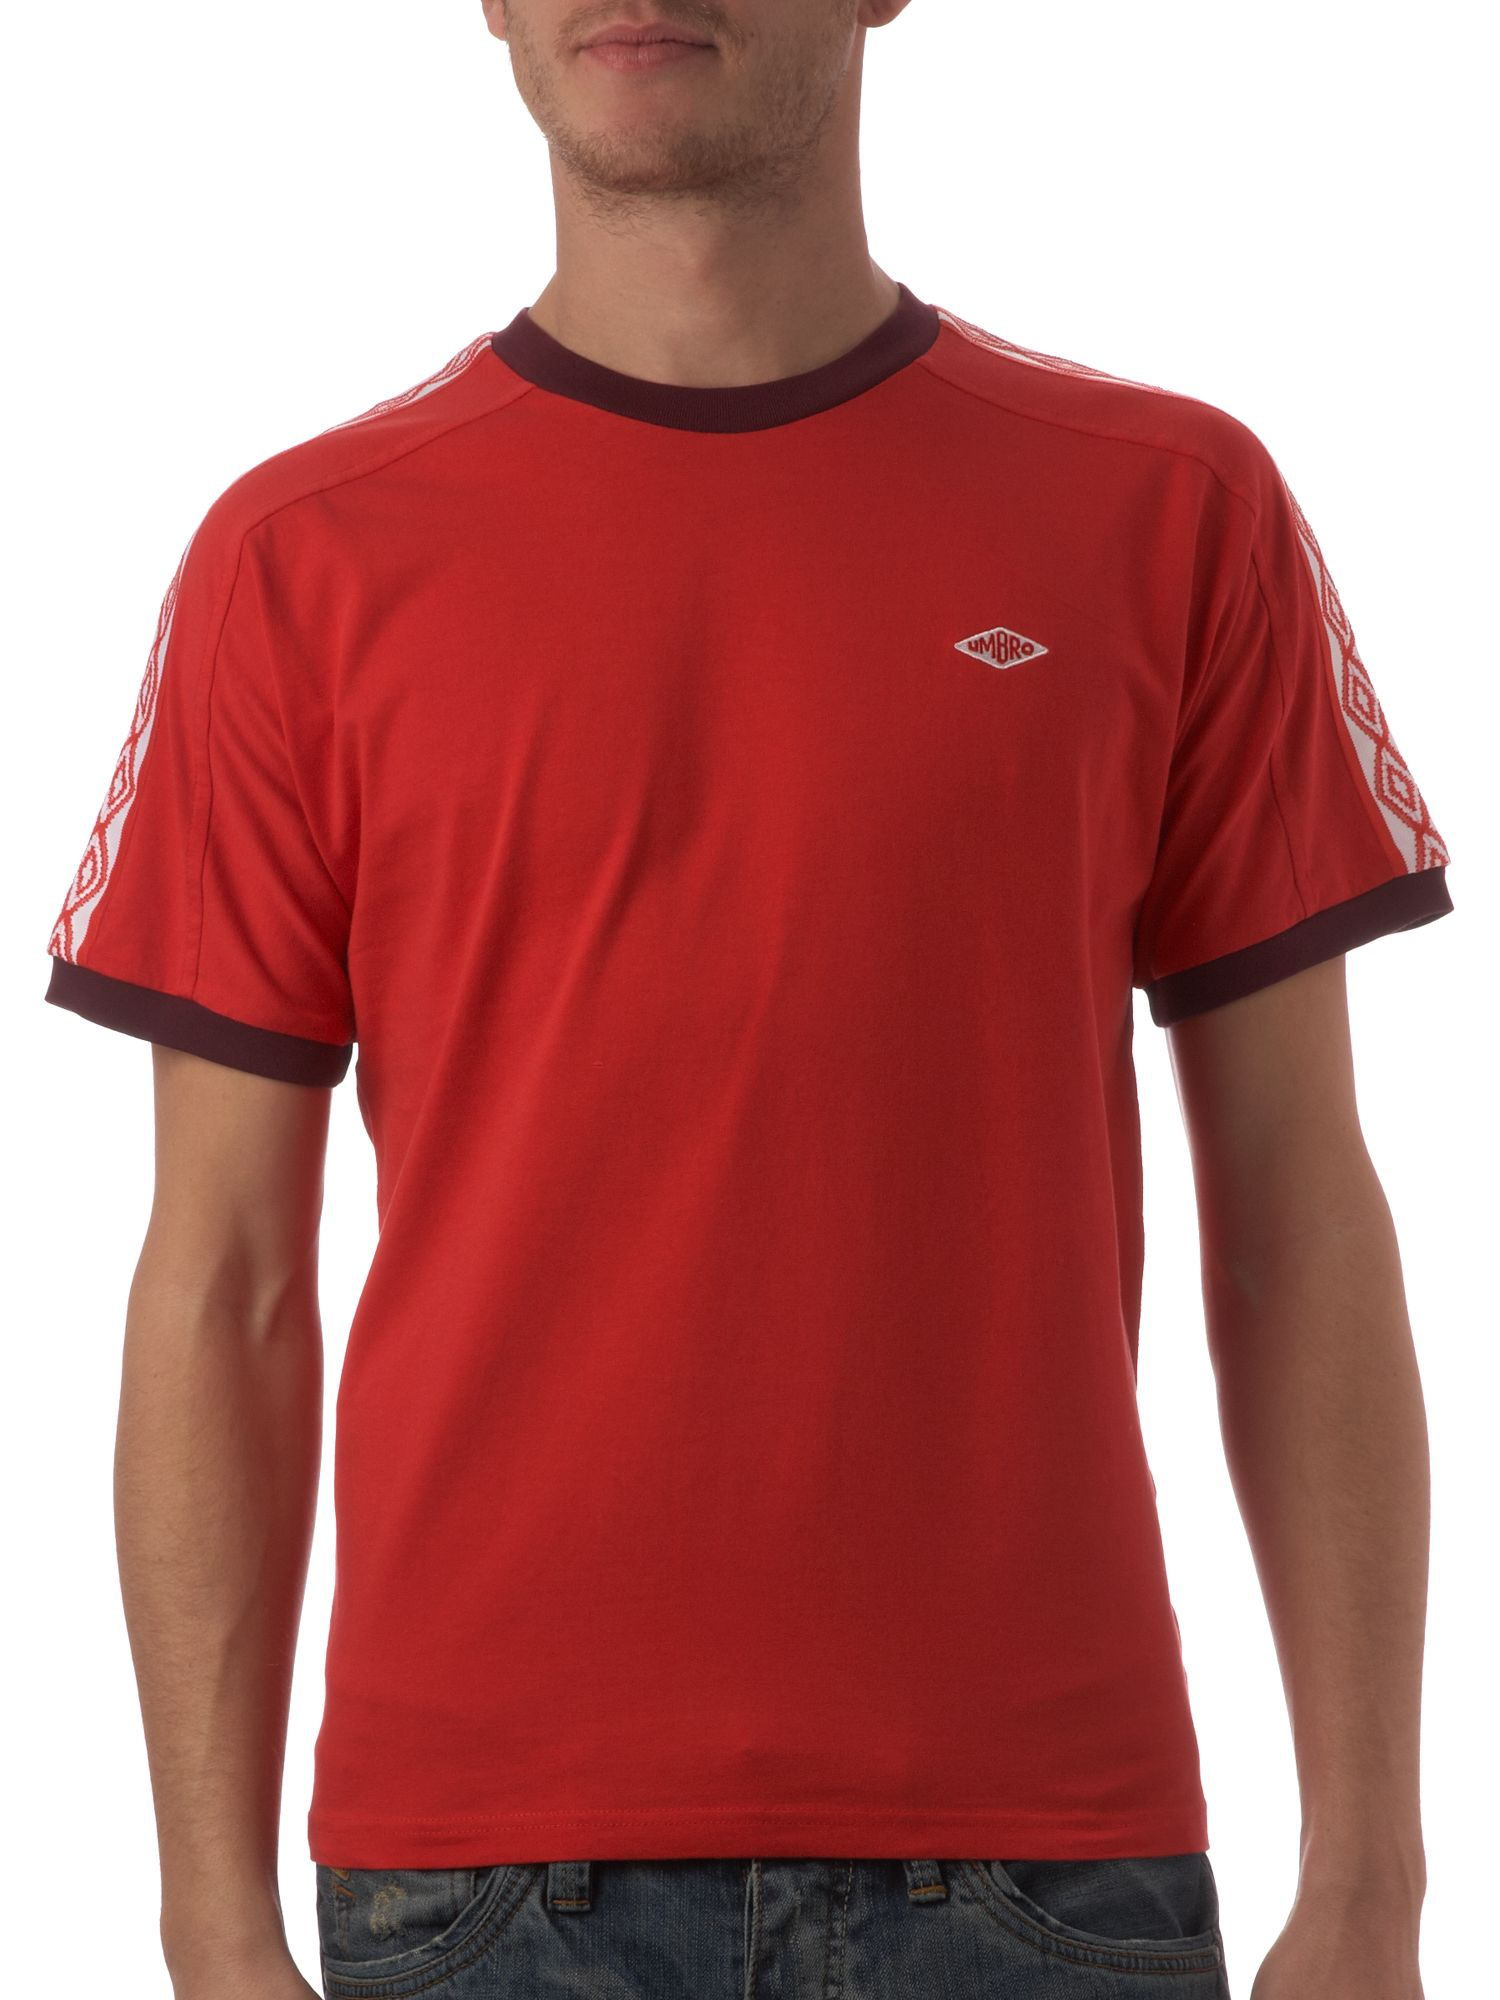 Umbro Taped crew tee product image